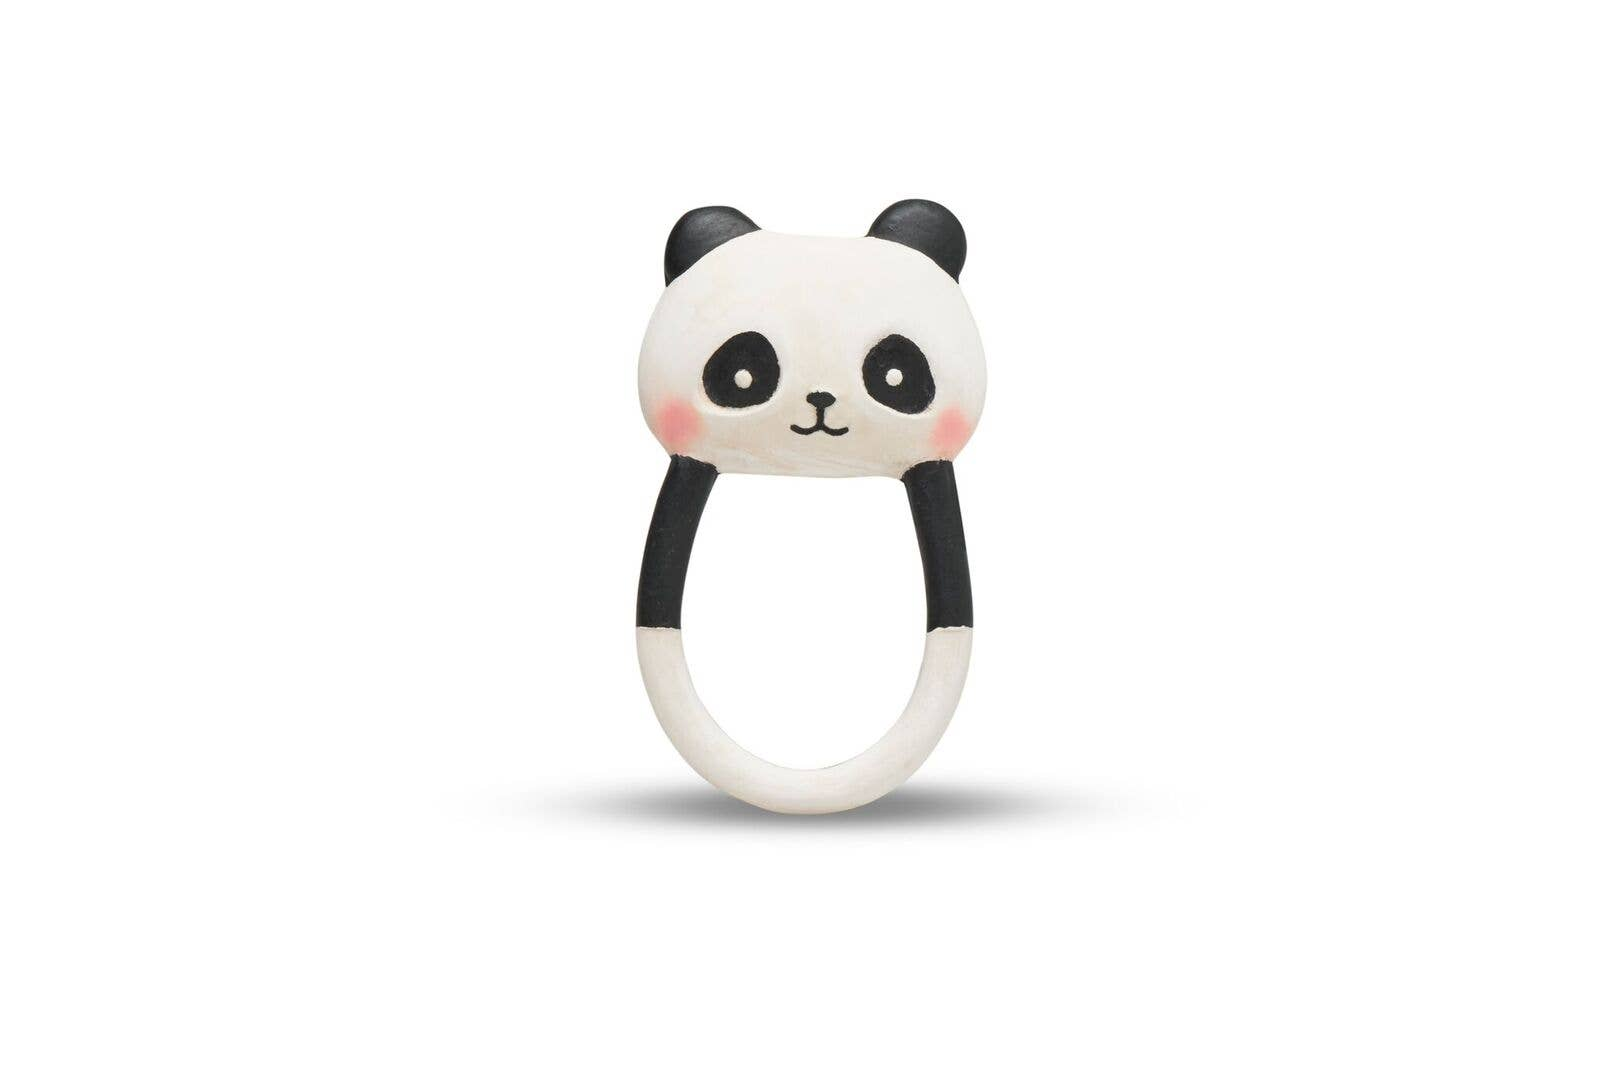 Lanco-Toys - Kori the Panda Teether - 100% Natural Rubber - Hand painted - Le Bébé Chic Boutique